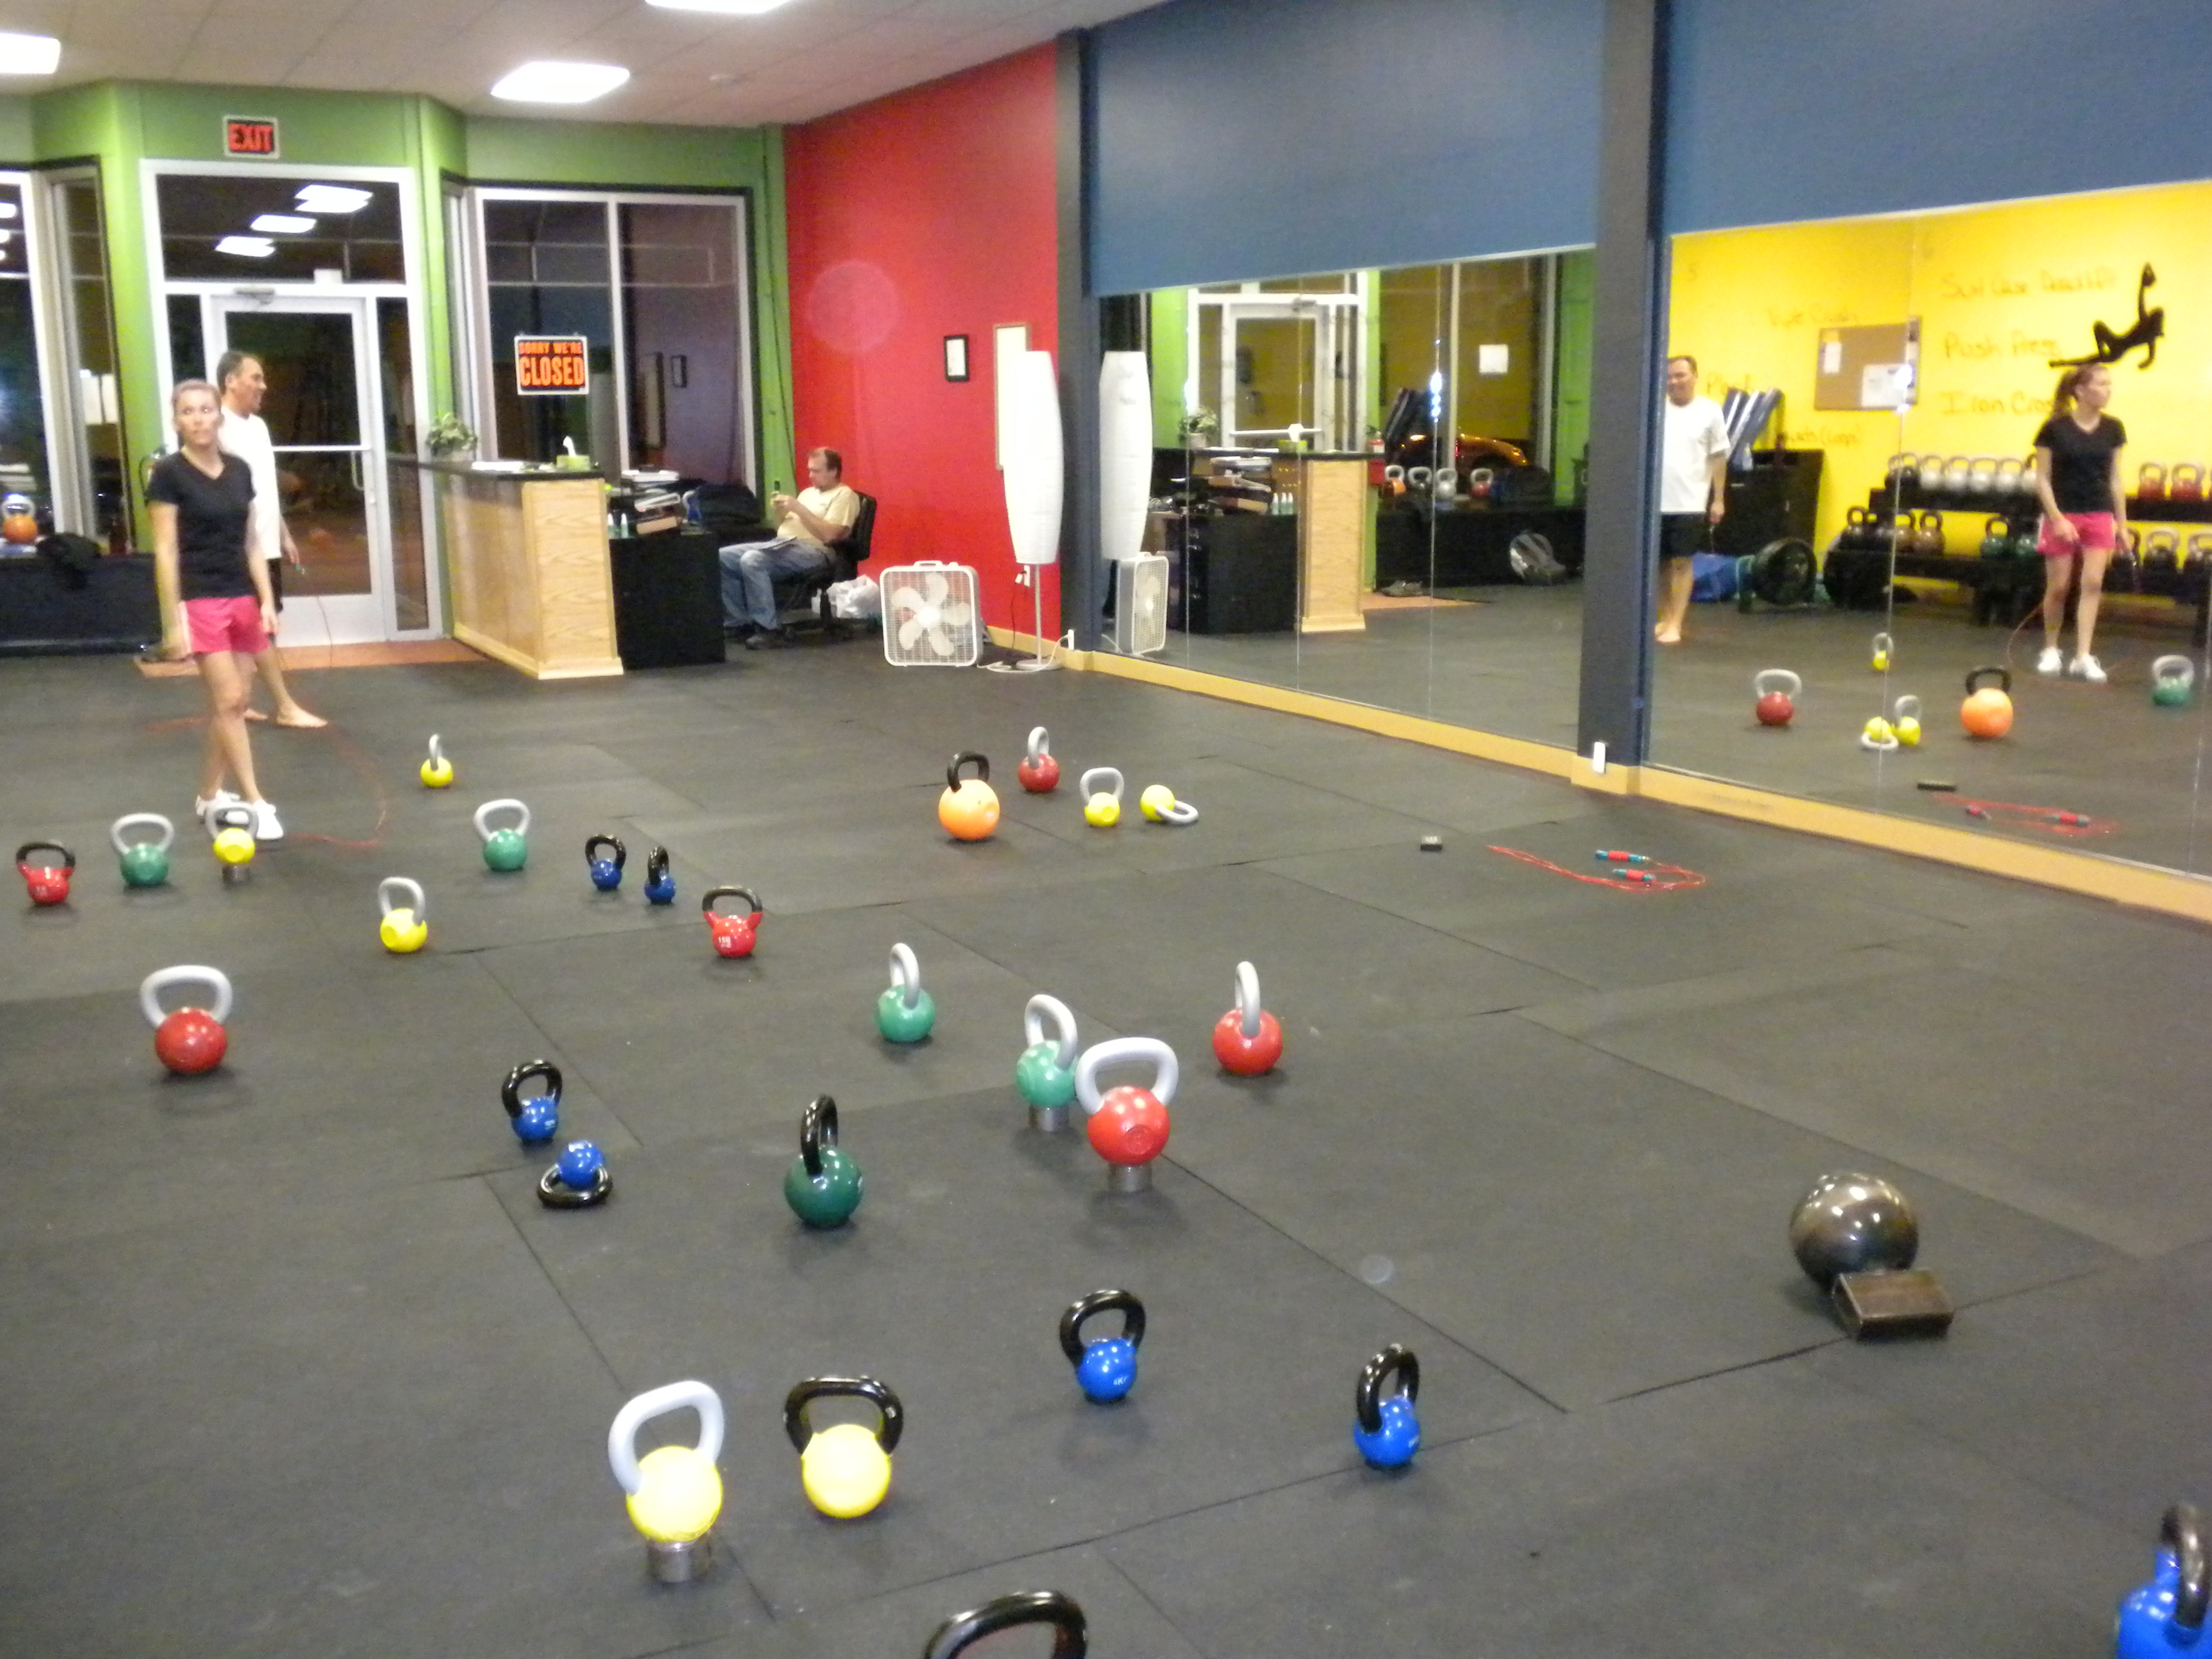 That's a lot of kettlebells!